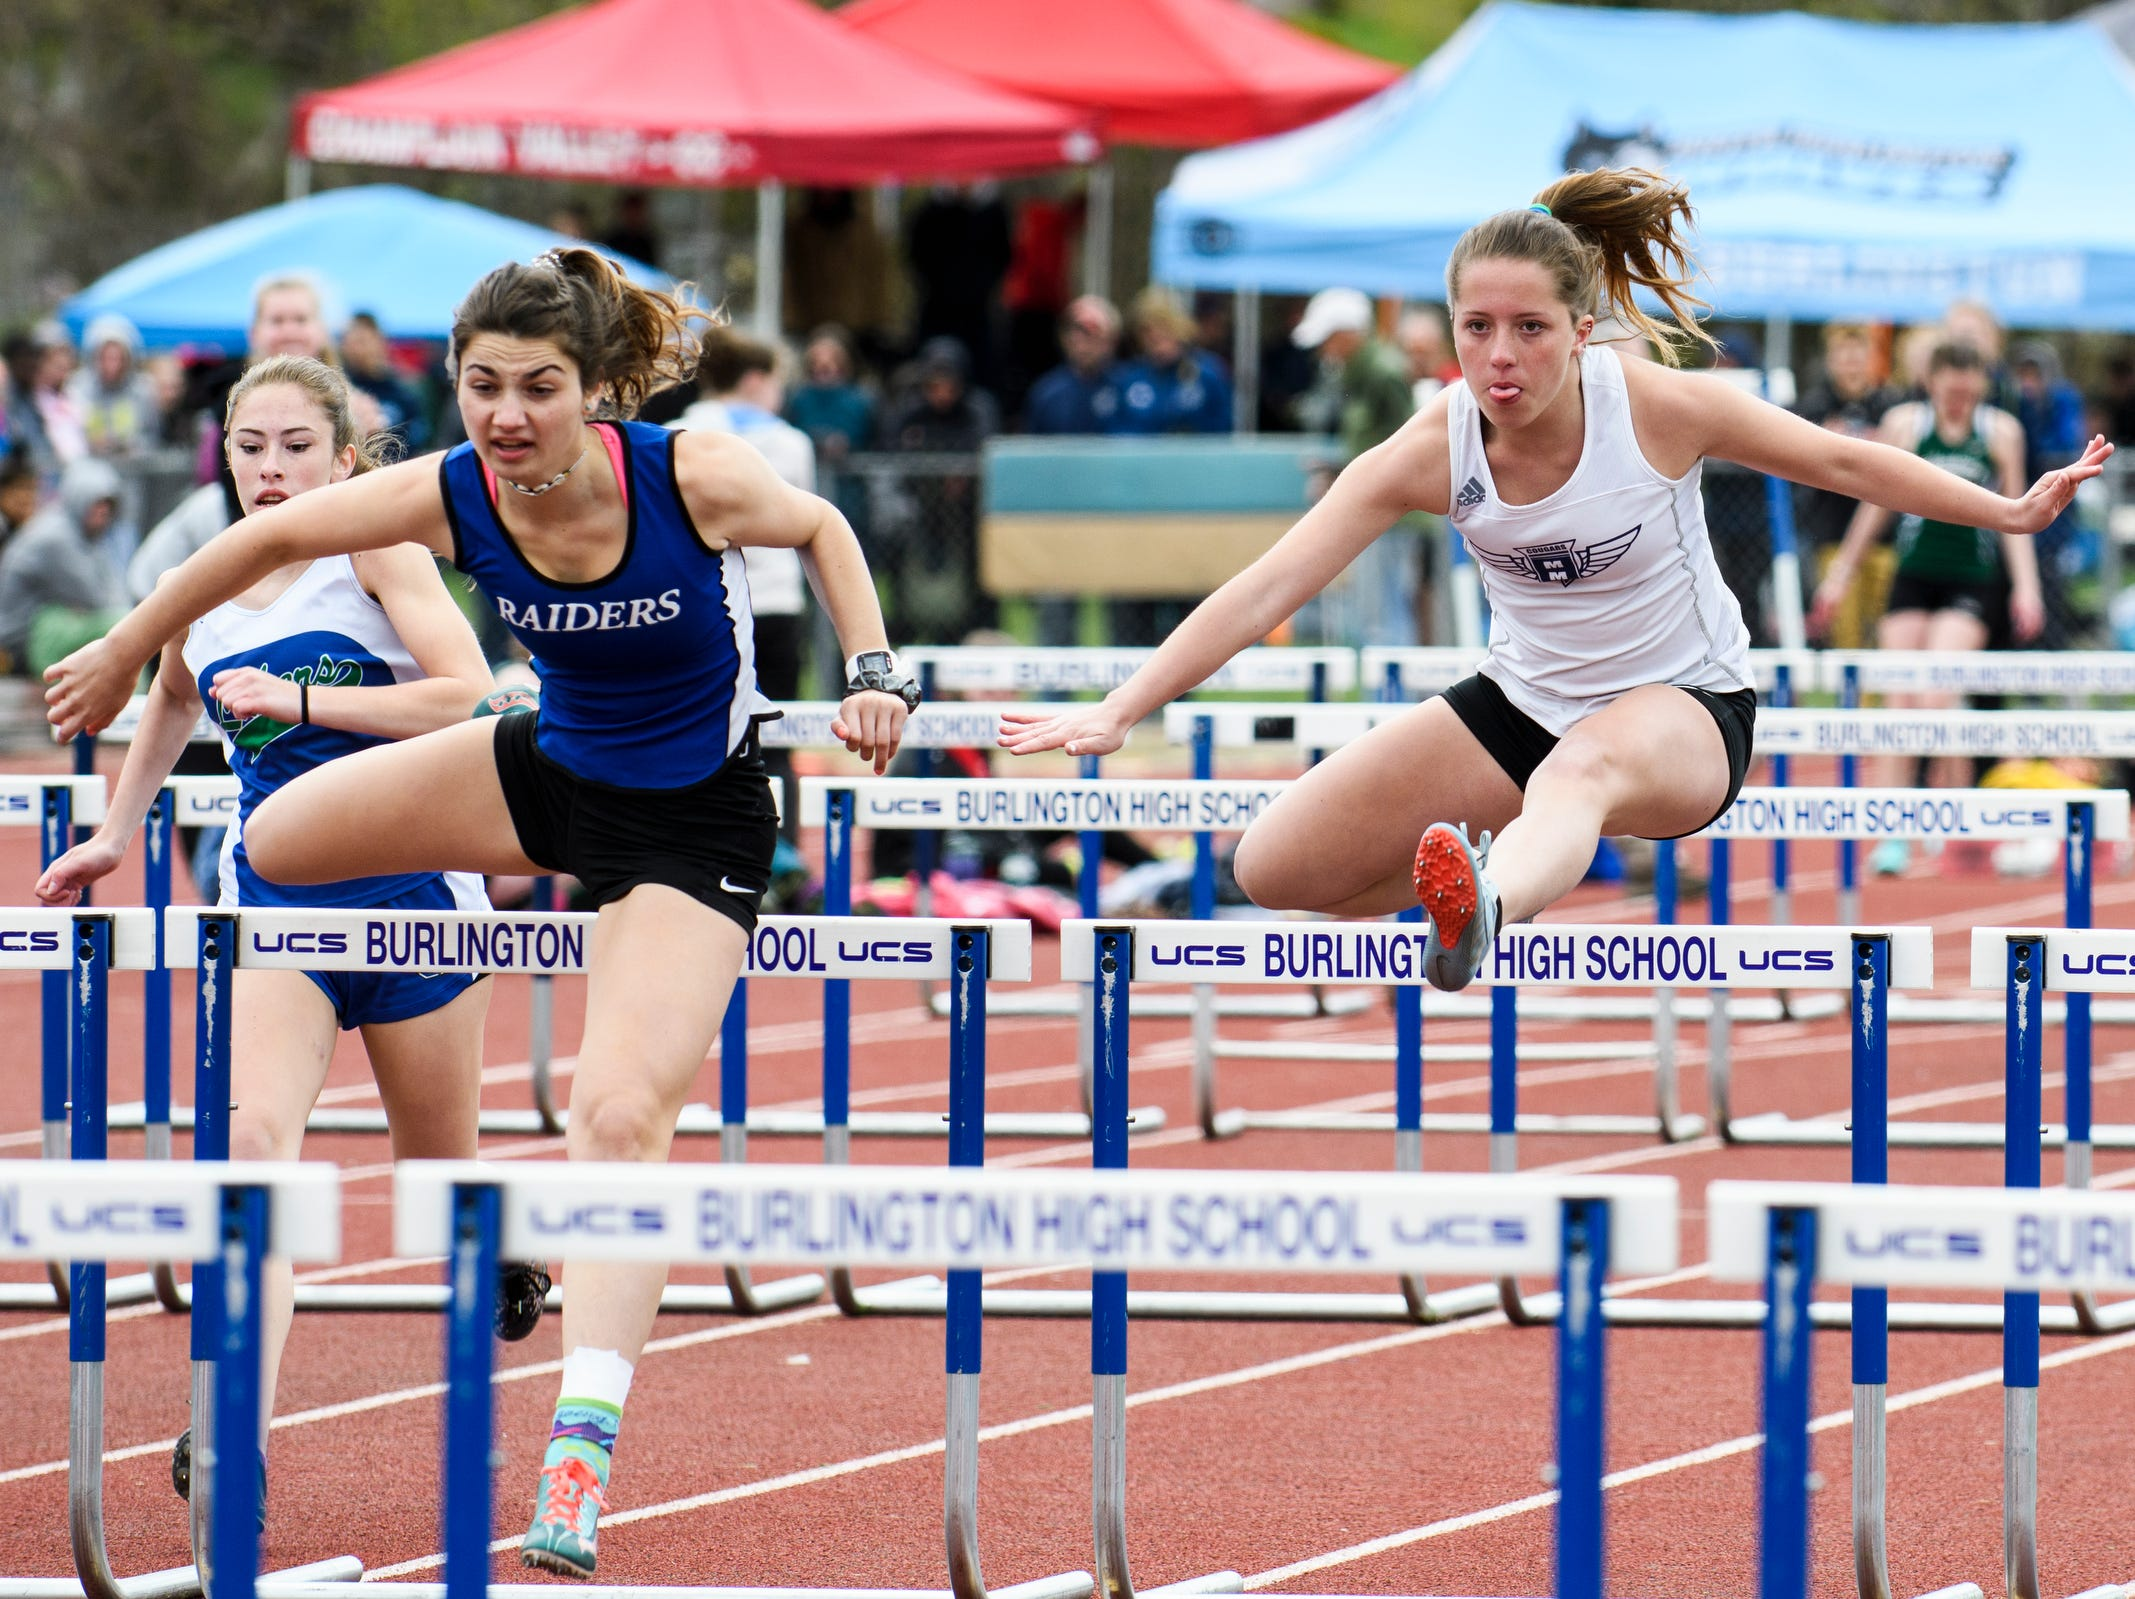 MMU's Ava Esmay and U-32's Julia Oliver, left, compete in the 100m hurdles during the Burlington Invitational high school track and field meet at Buck Hard Field on Saturday May 11, 2019 in Burlington, Vermont.